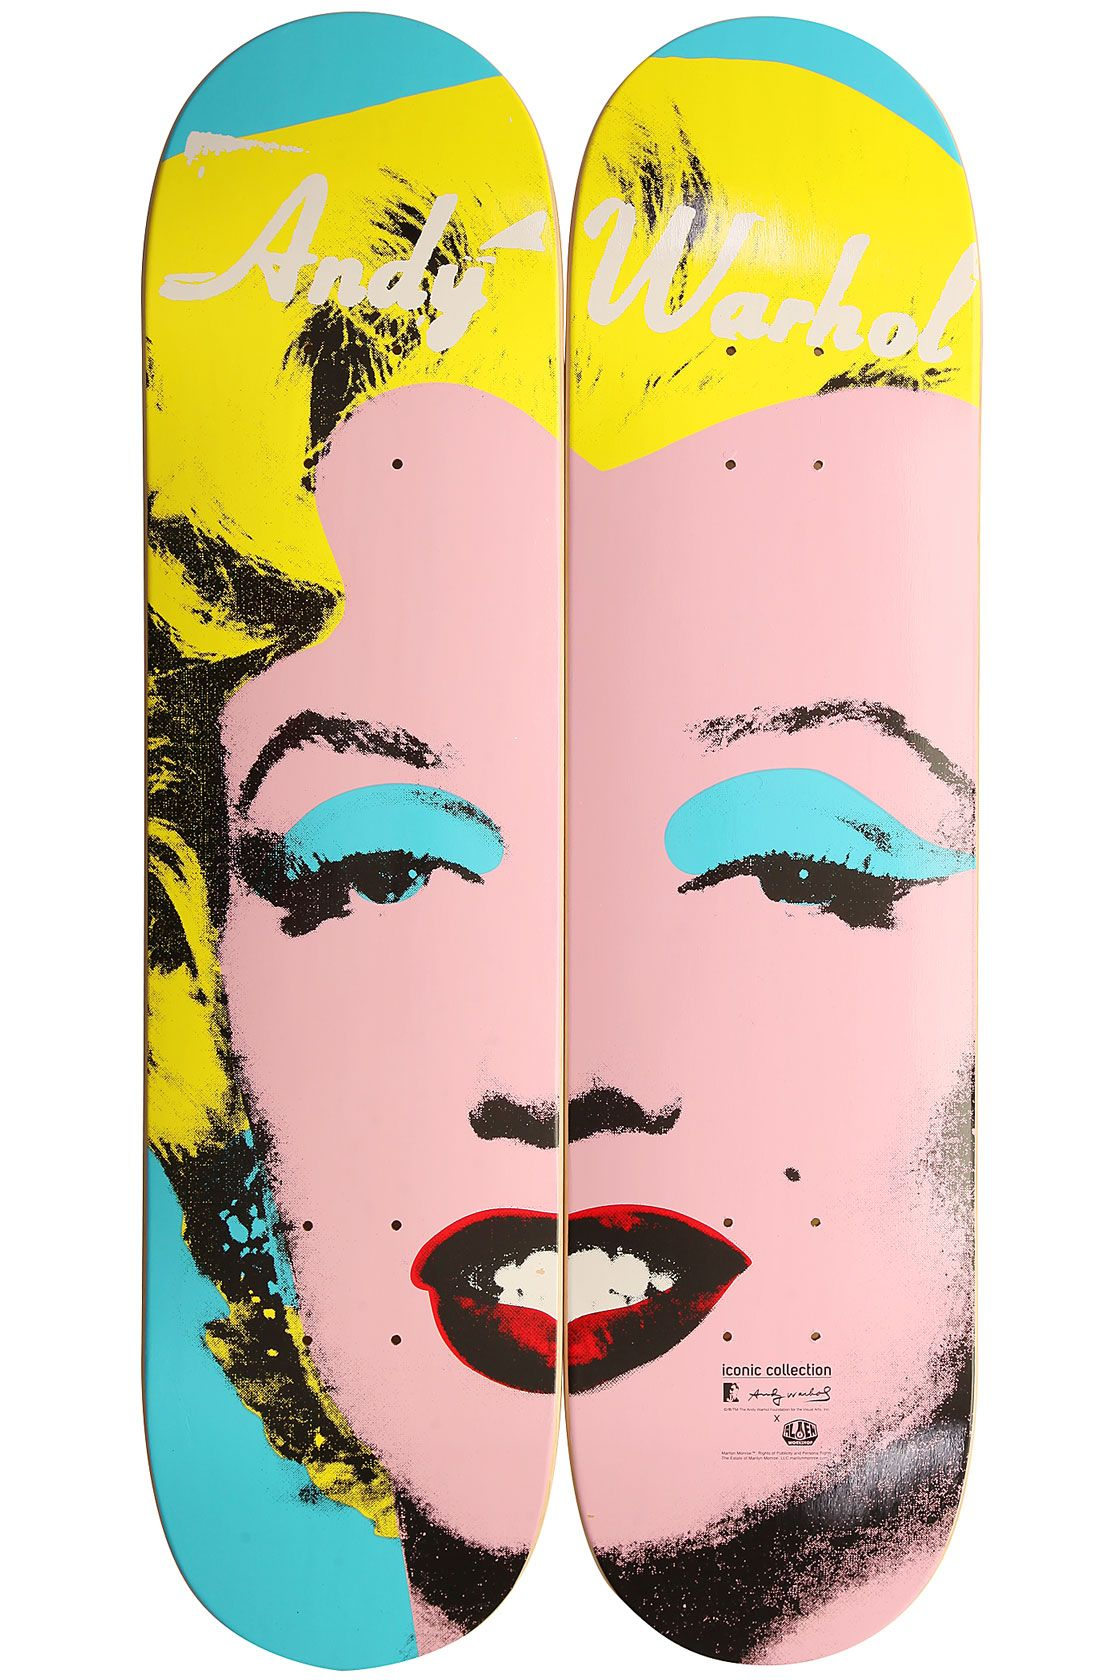 Trippy Art Monroe Marilyn